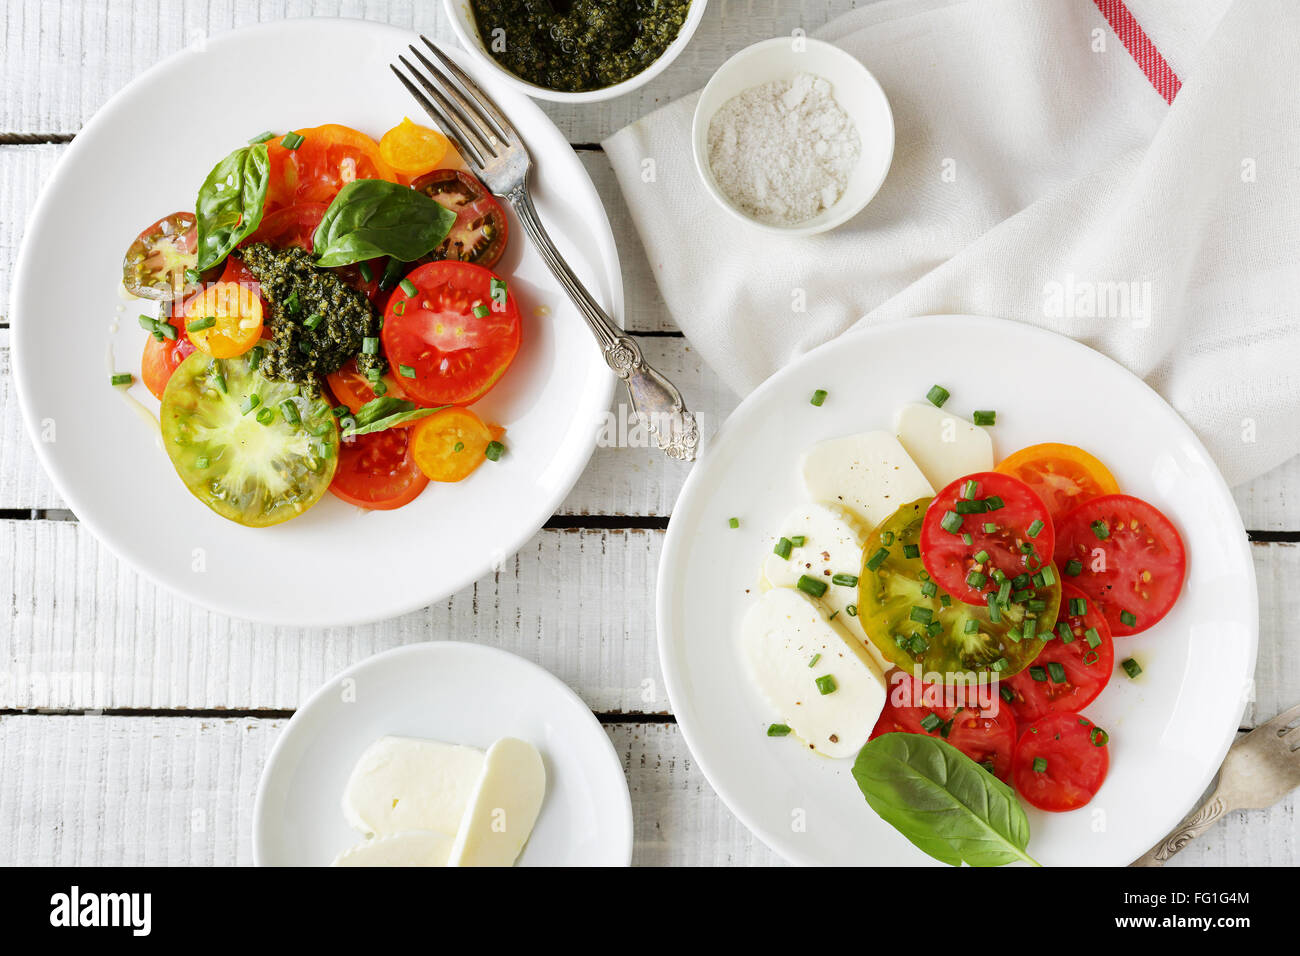 italian caprese salad and tomato on plate, food top view - Stock Image